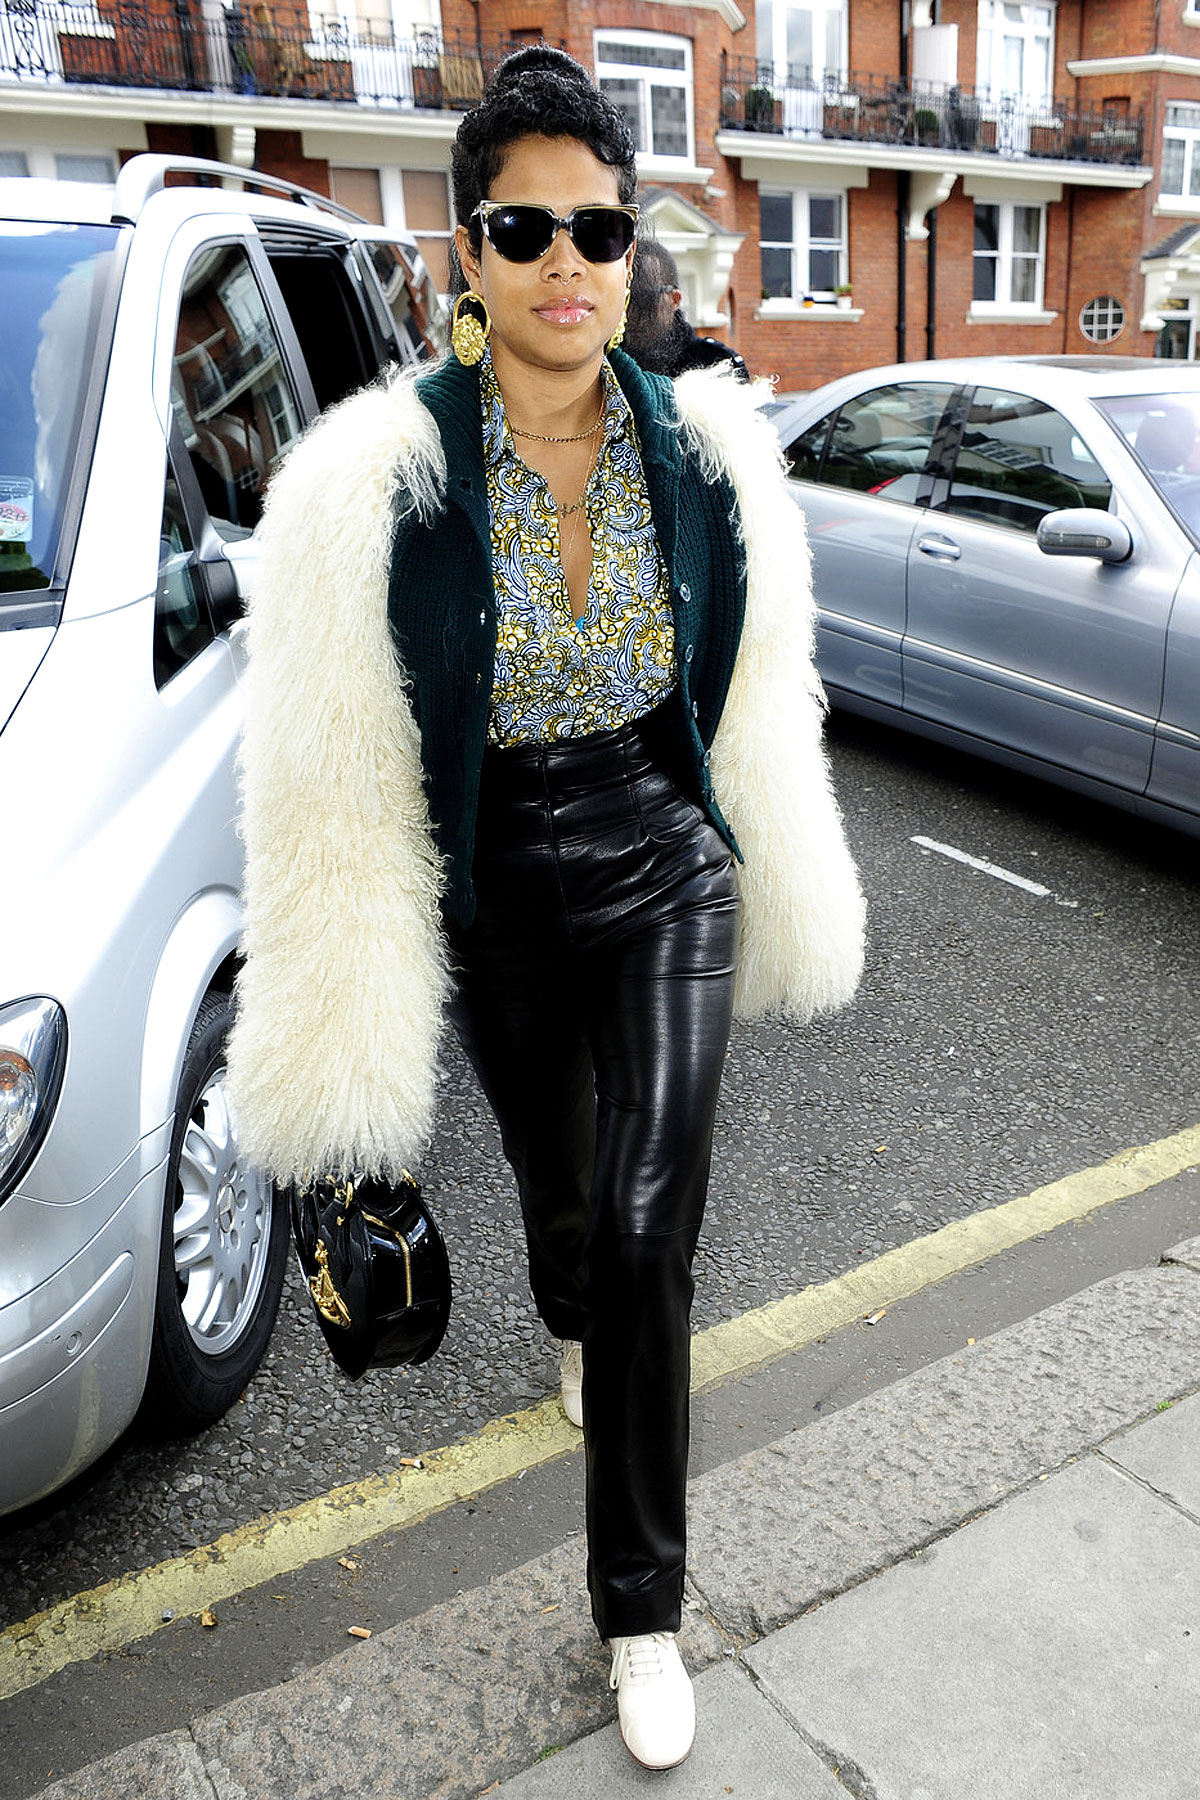 Fashion FAIL: Kelis Wears The Fur Of A Sheepdog (PHOTOS)